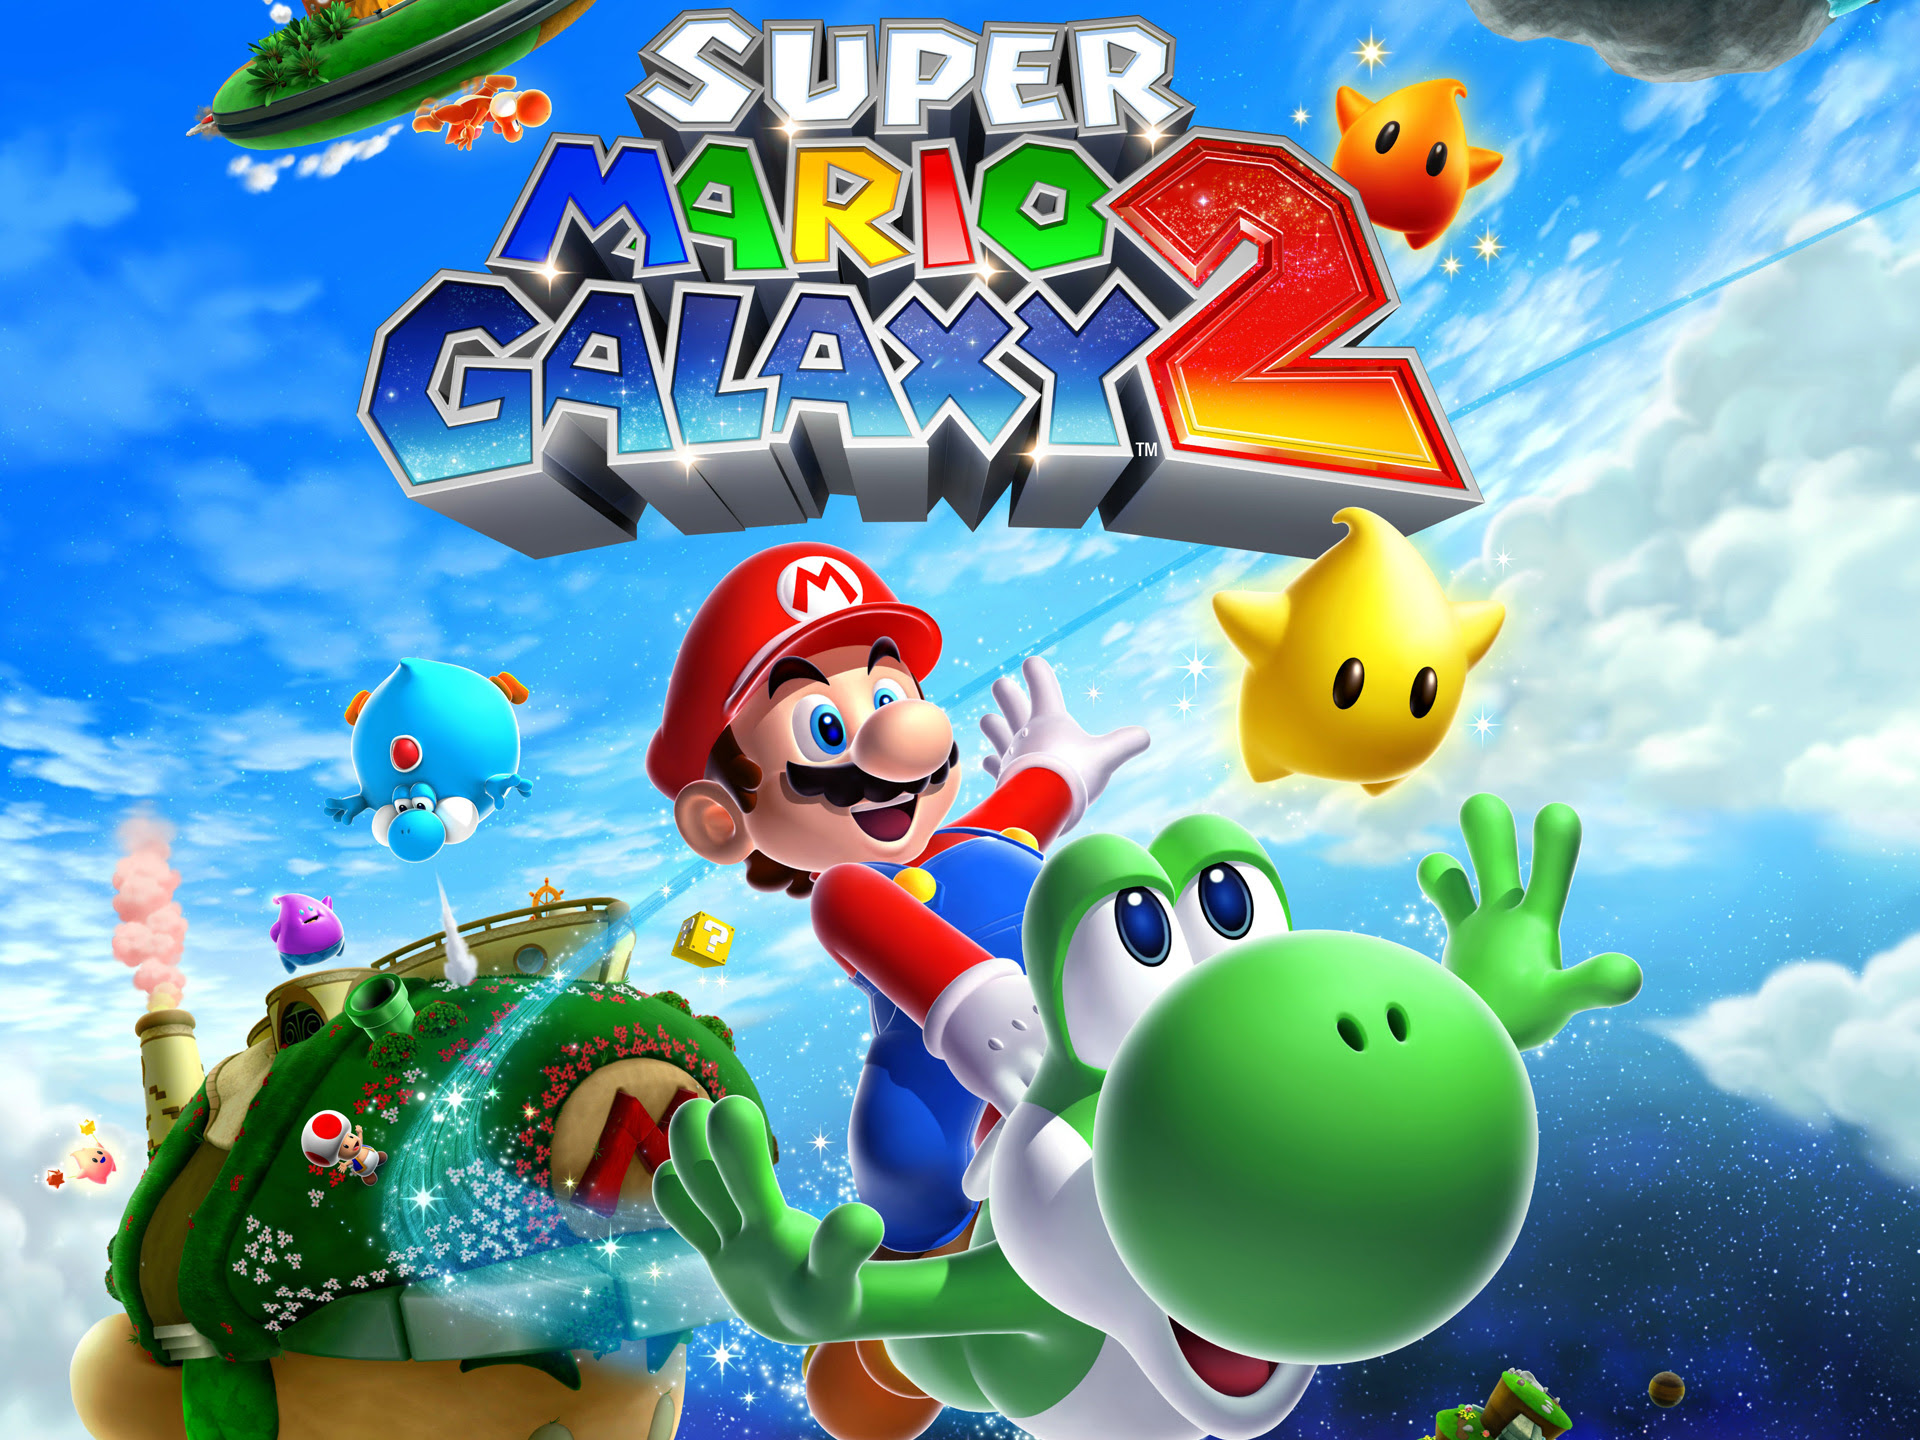 Super Mario Galaxy 2 Wallpapers Wallpapers Hd